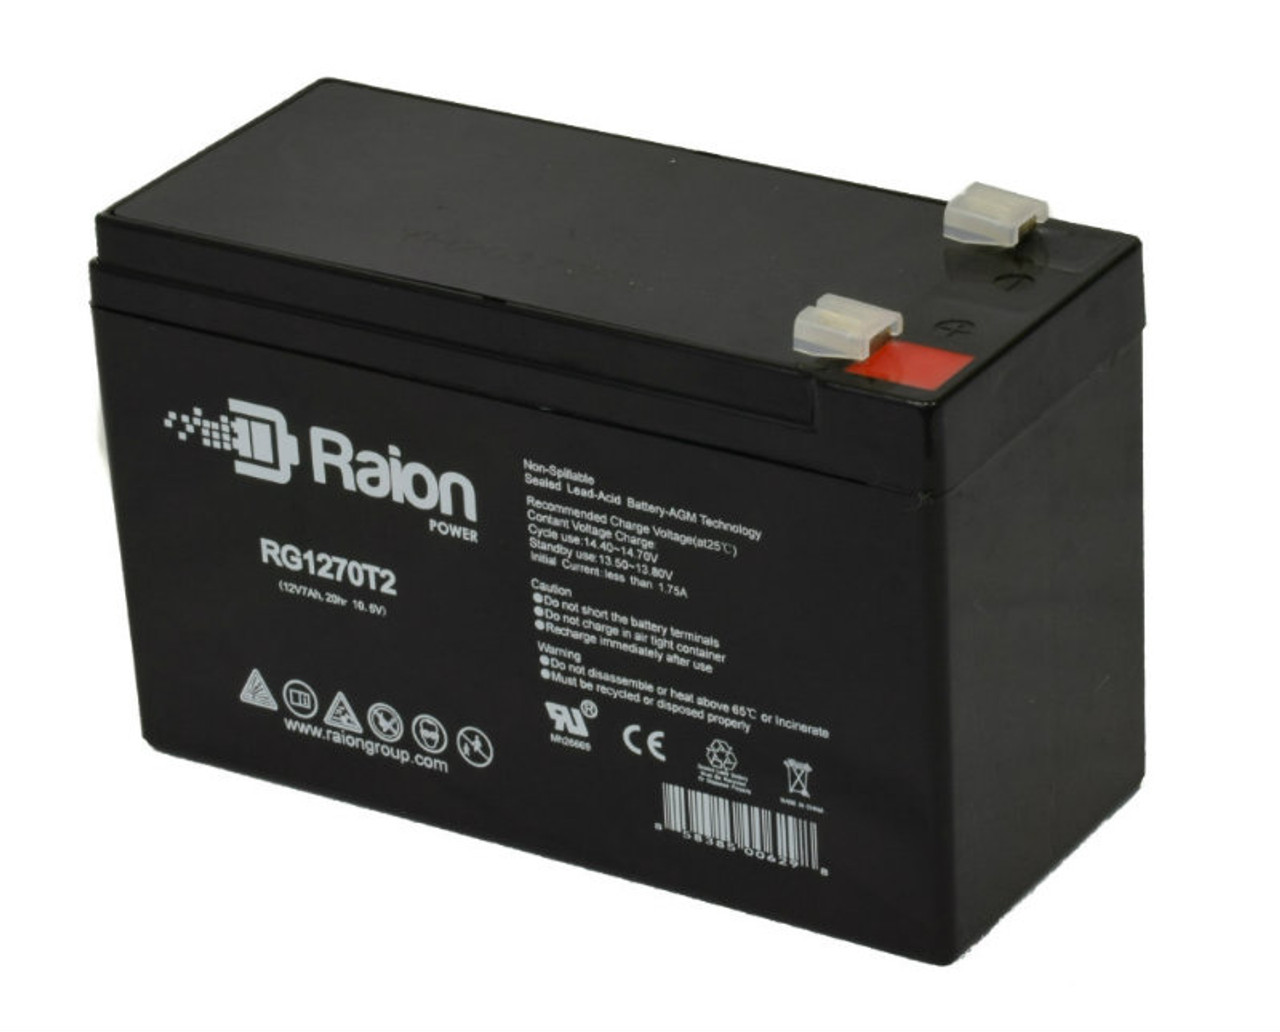 Raion Power RG1270T1 Replacement Battery for Universal Power UB1270 (40800)